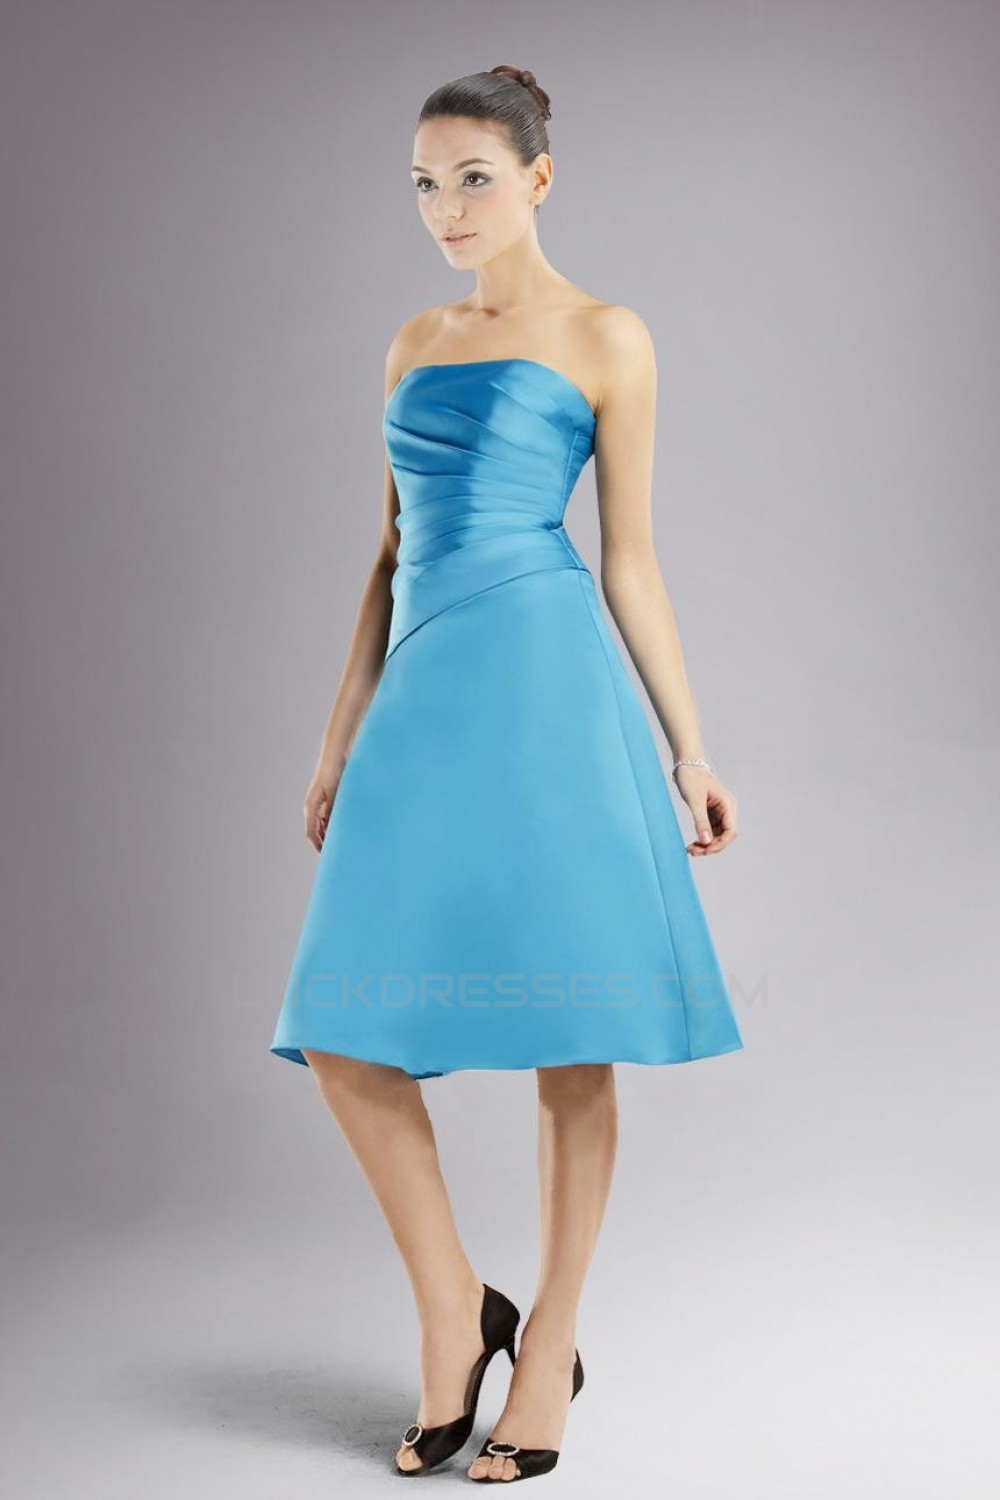 A-Line Strapless Blue Knee-Length Bridesmaid Dresses/Wedding Party ...